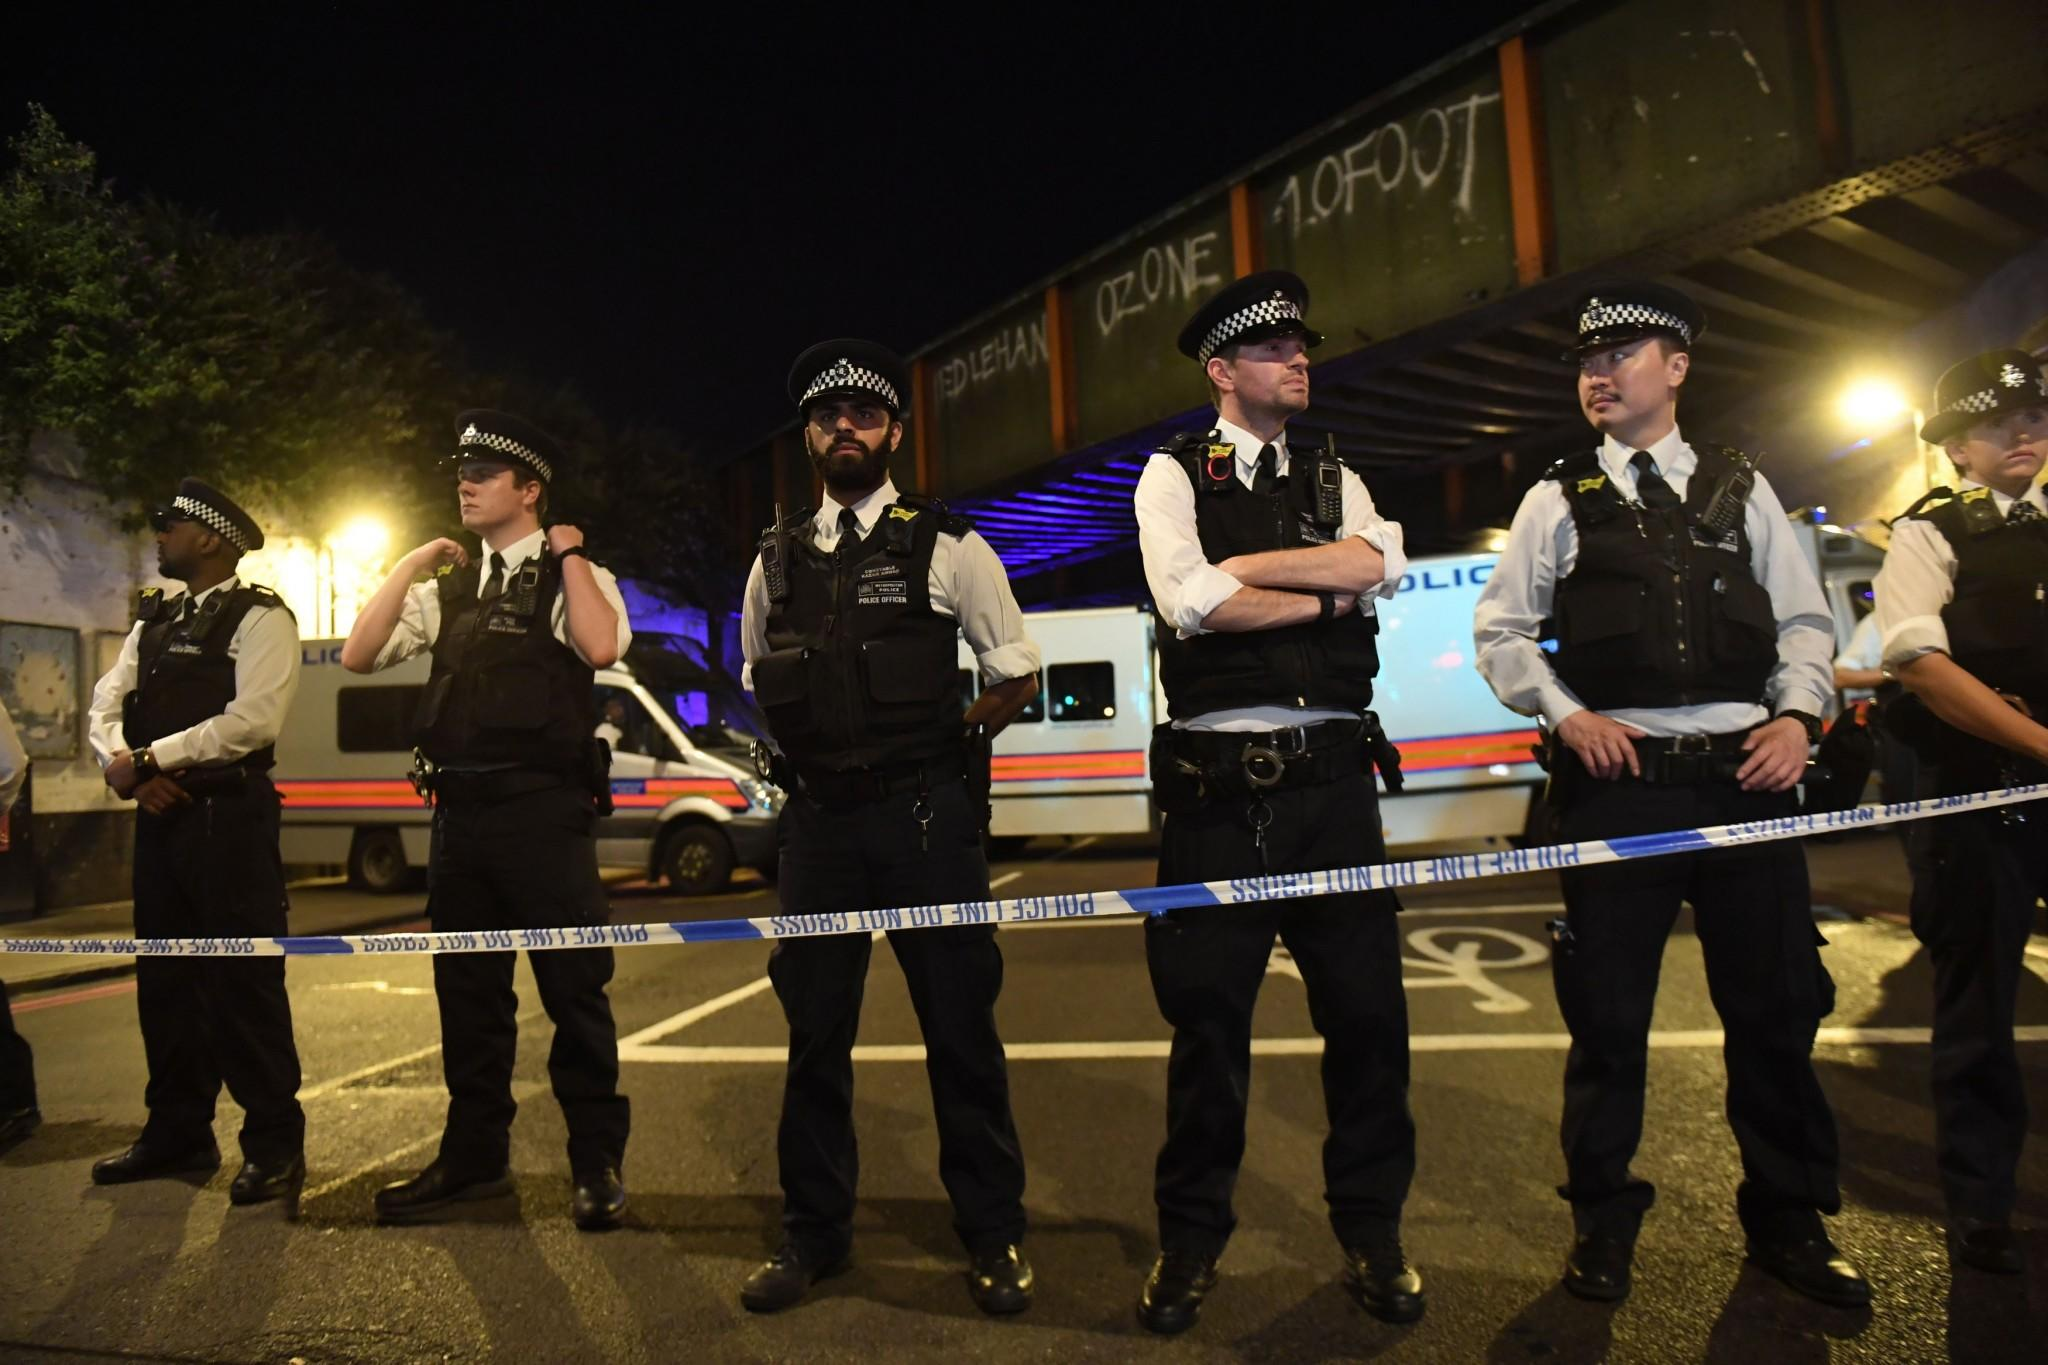 Police attend the scene of the Finsbury Park mosque attack (PA Images)